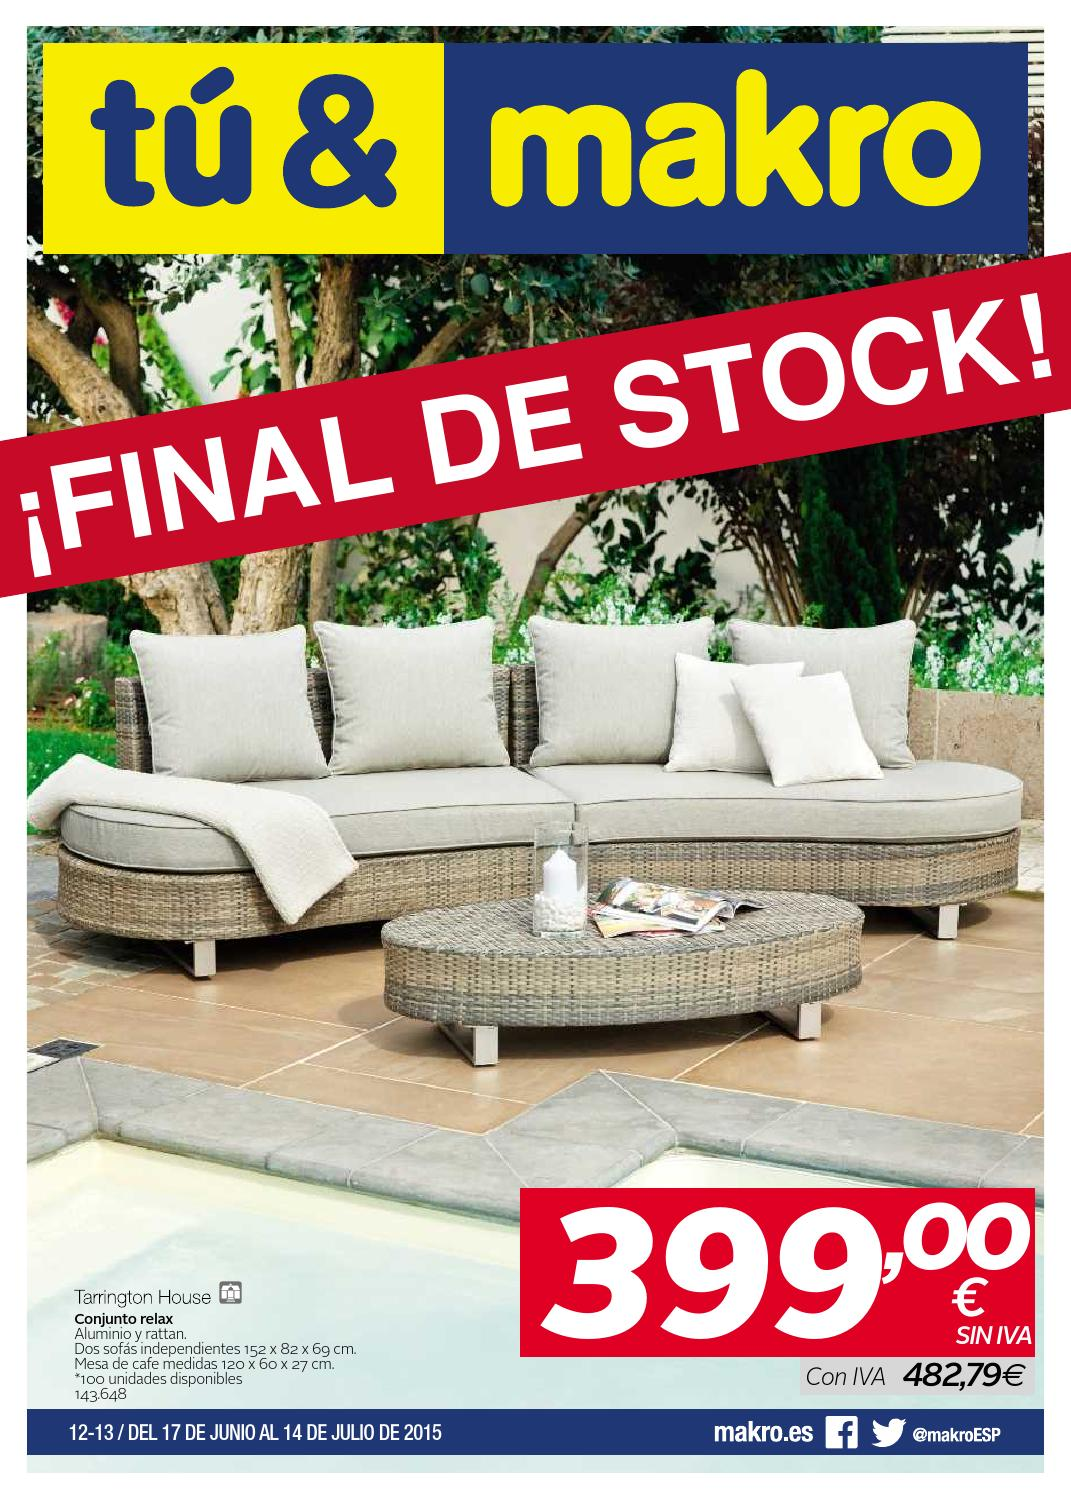 makro espana ofertas final de stock peninsula by